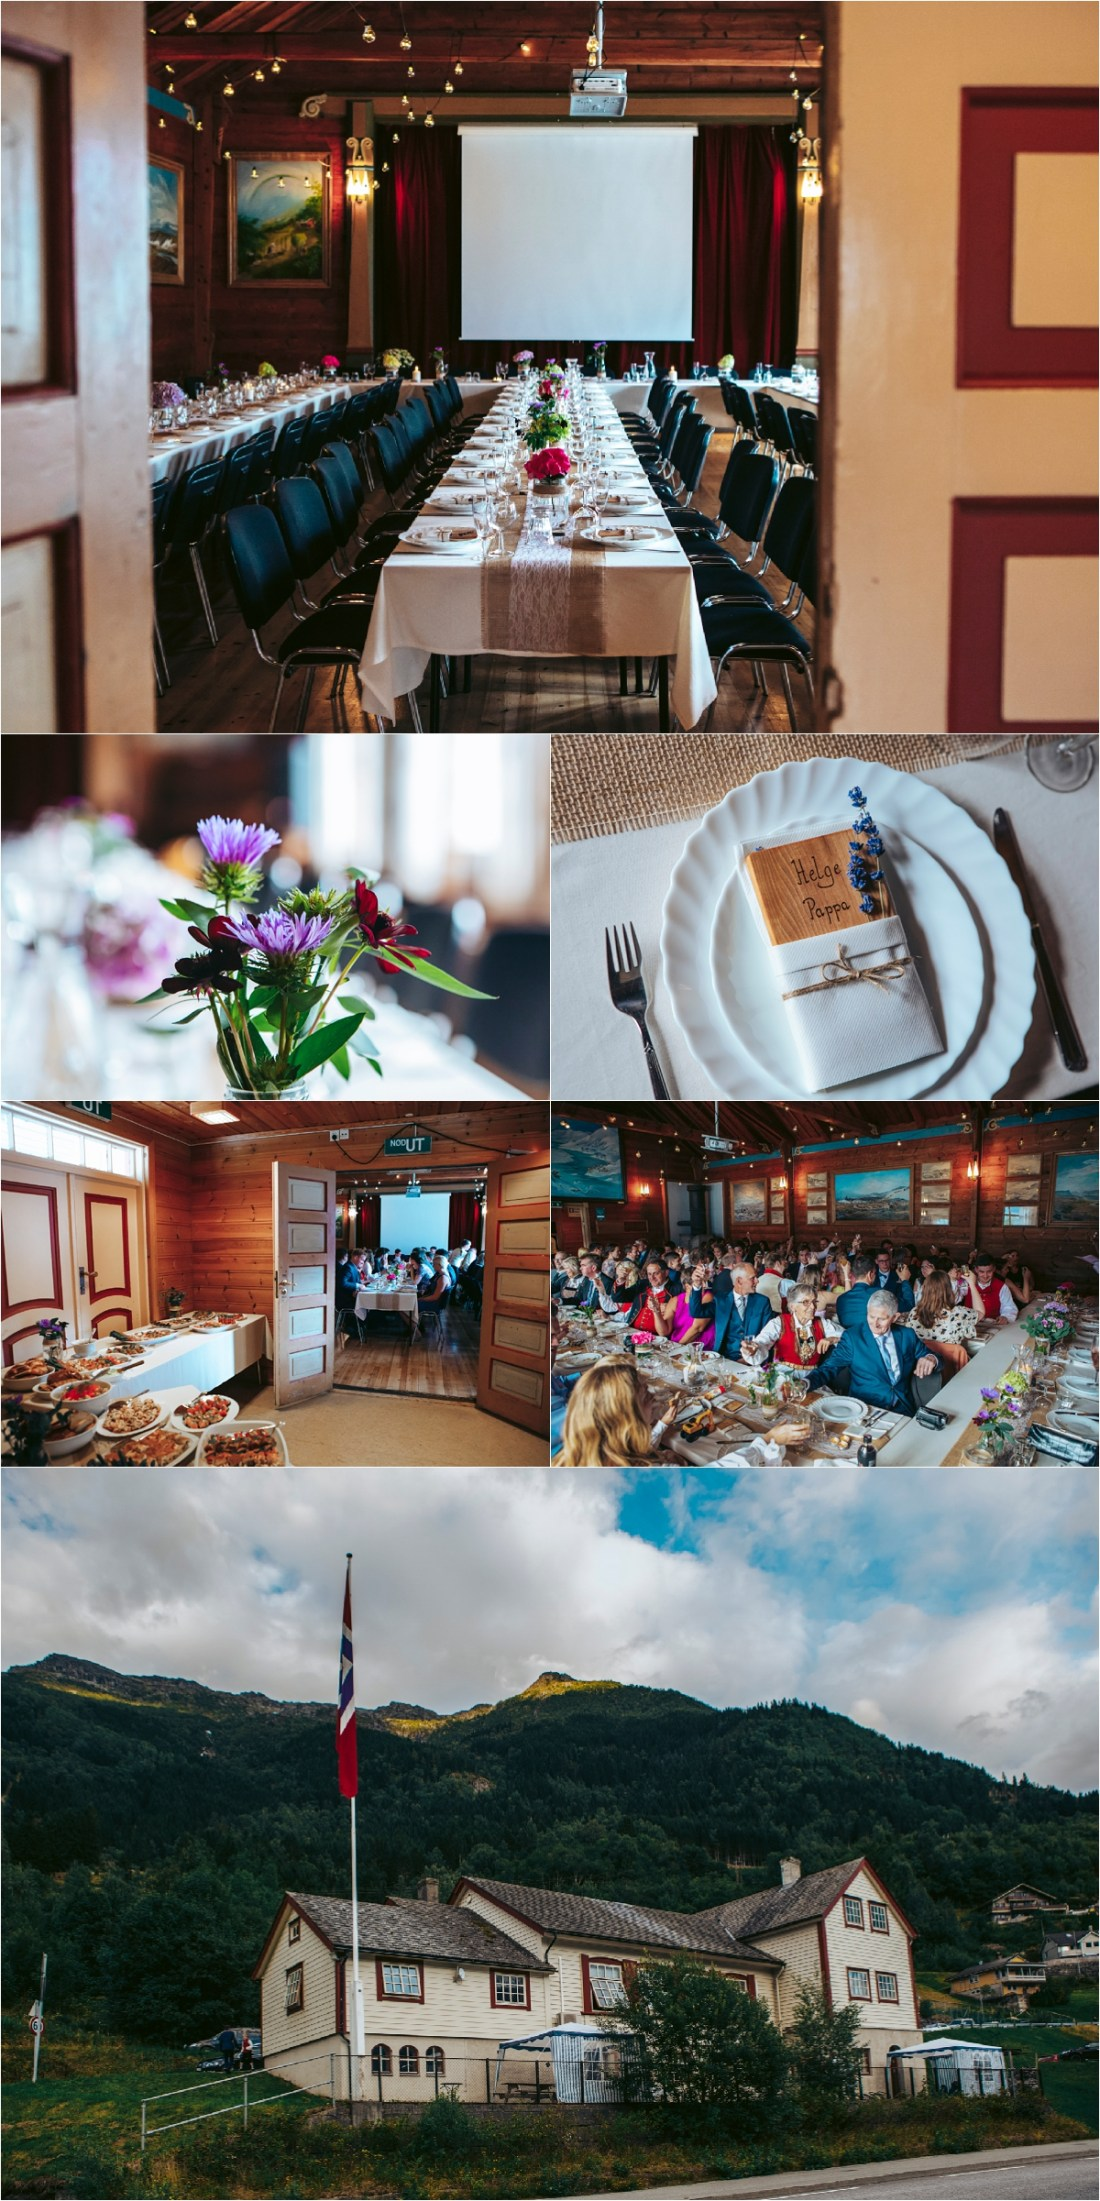 A Norwegian wedding reception in a local village hall in Hardanger Fjord by Fotograf Lene Fossdal